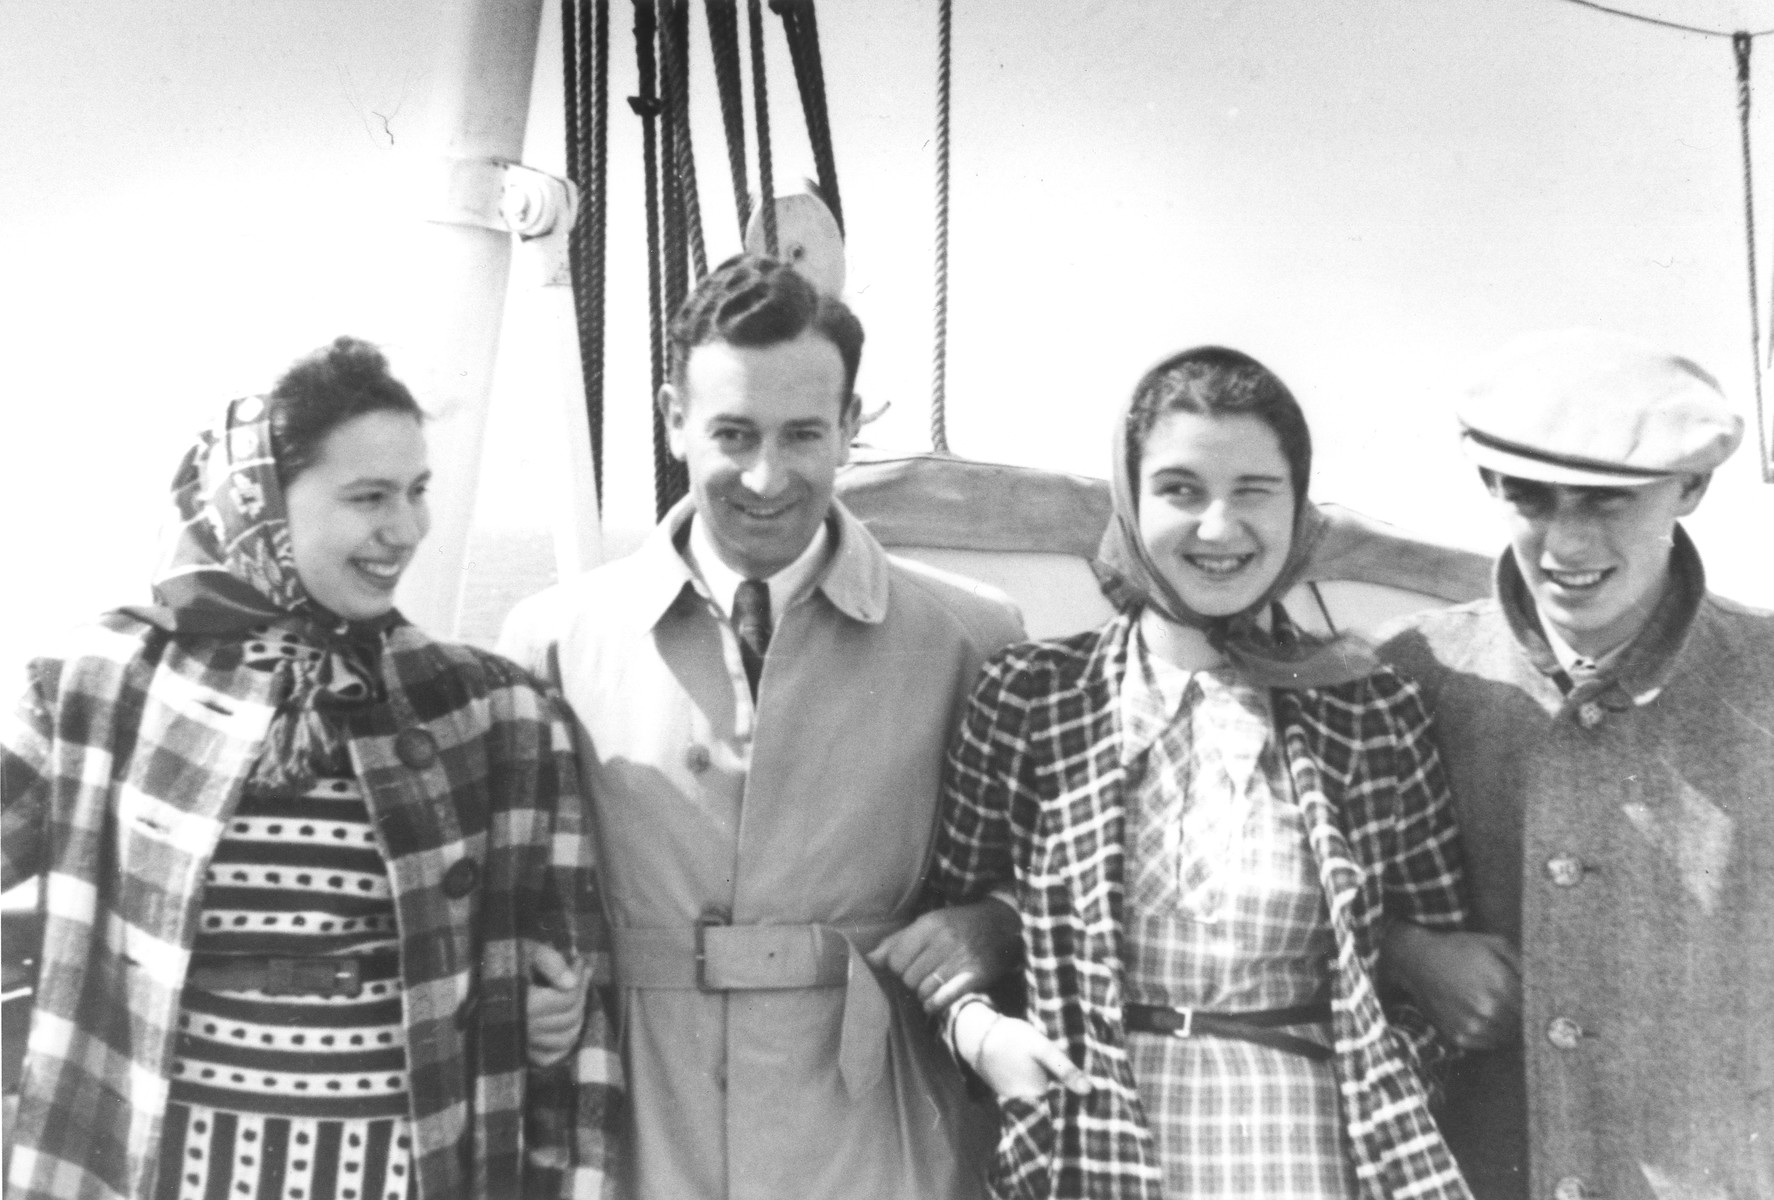 Four young Jewish refugees pose on the deck of the MS St. Louis.  Pictured from left to right are Hilde Pander, Walter Lenneberg, unknown and Fritz Buff.